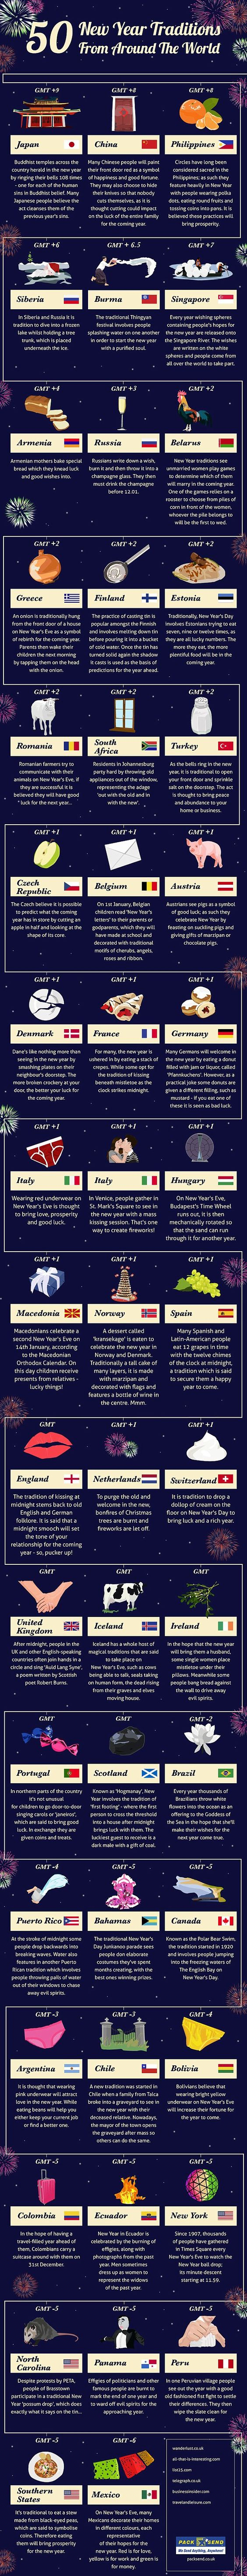 An infographic of all the weird and wonderful ways that NYE is celebrated throughout the world